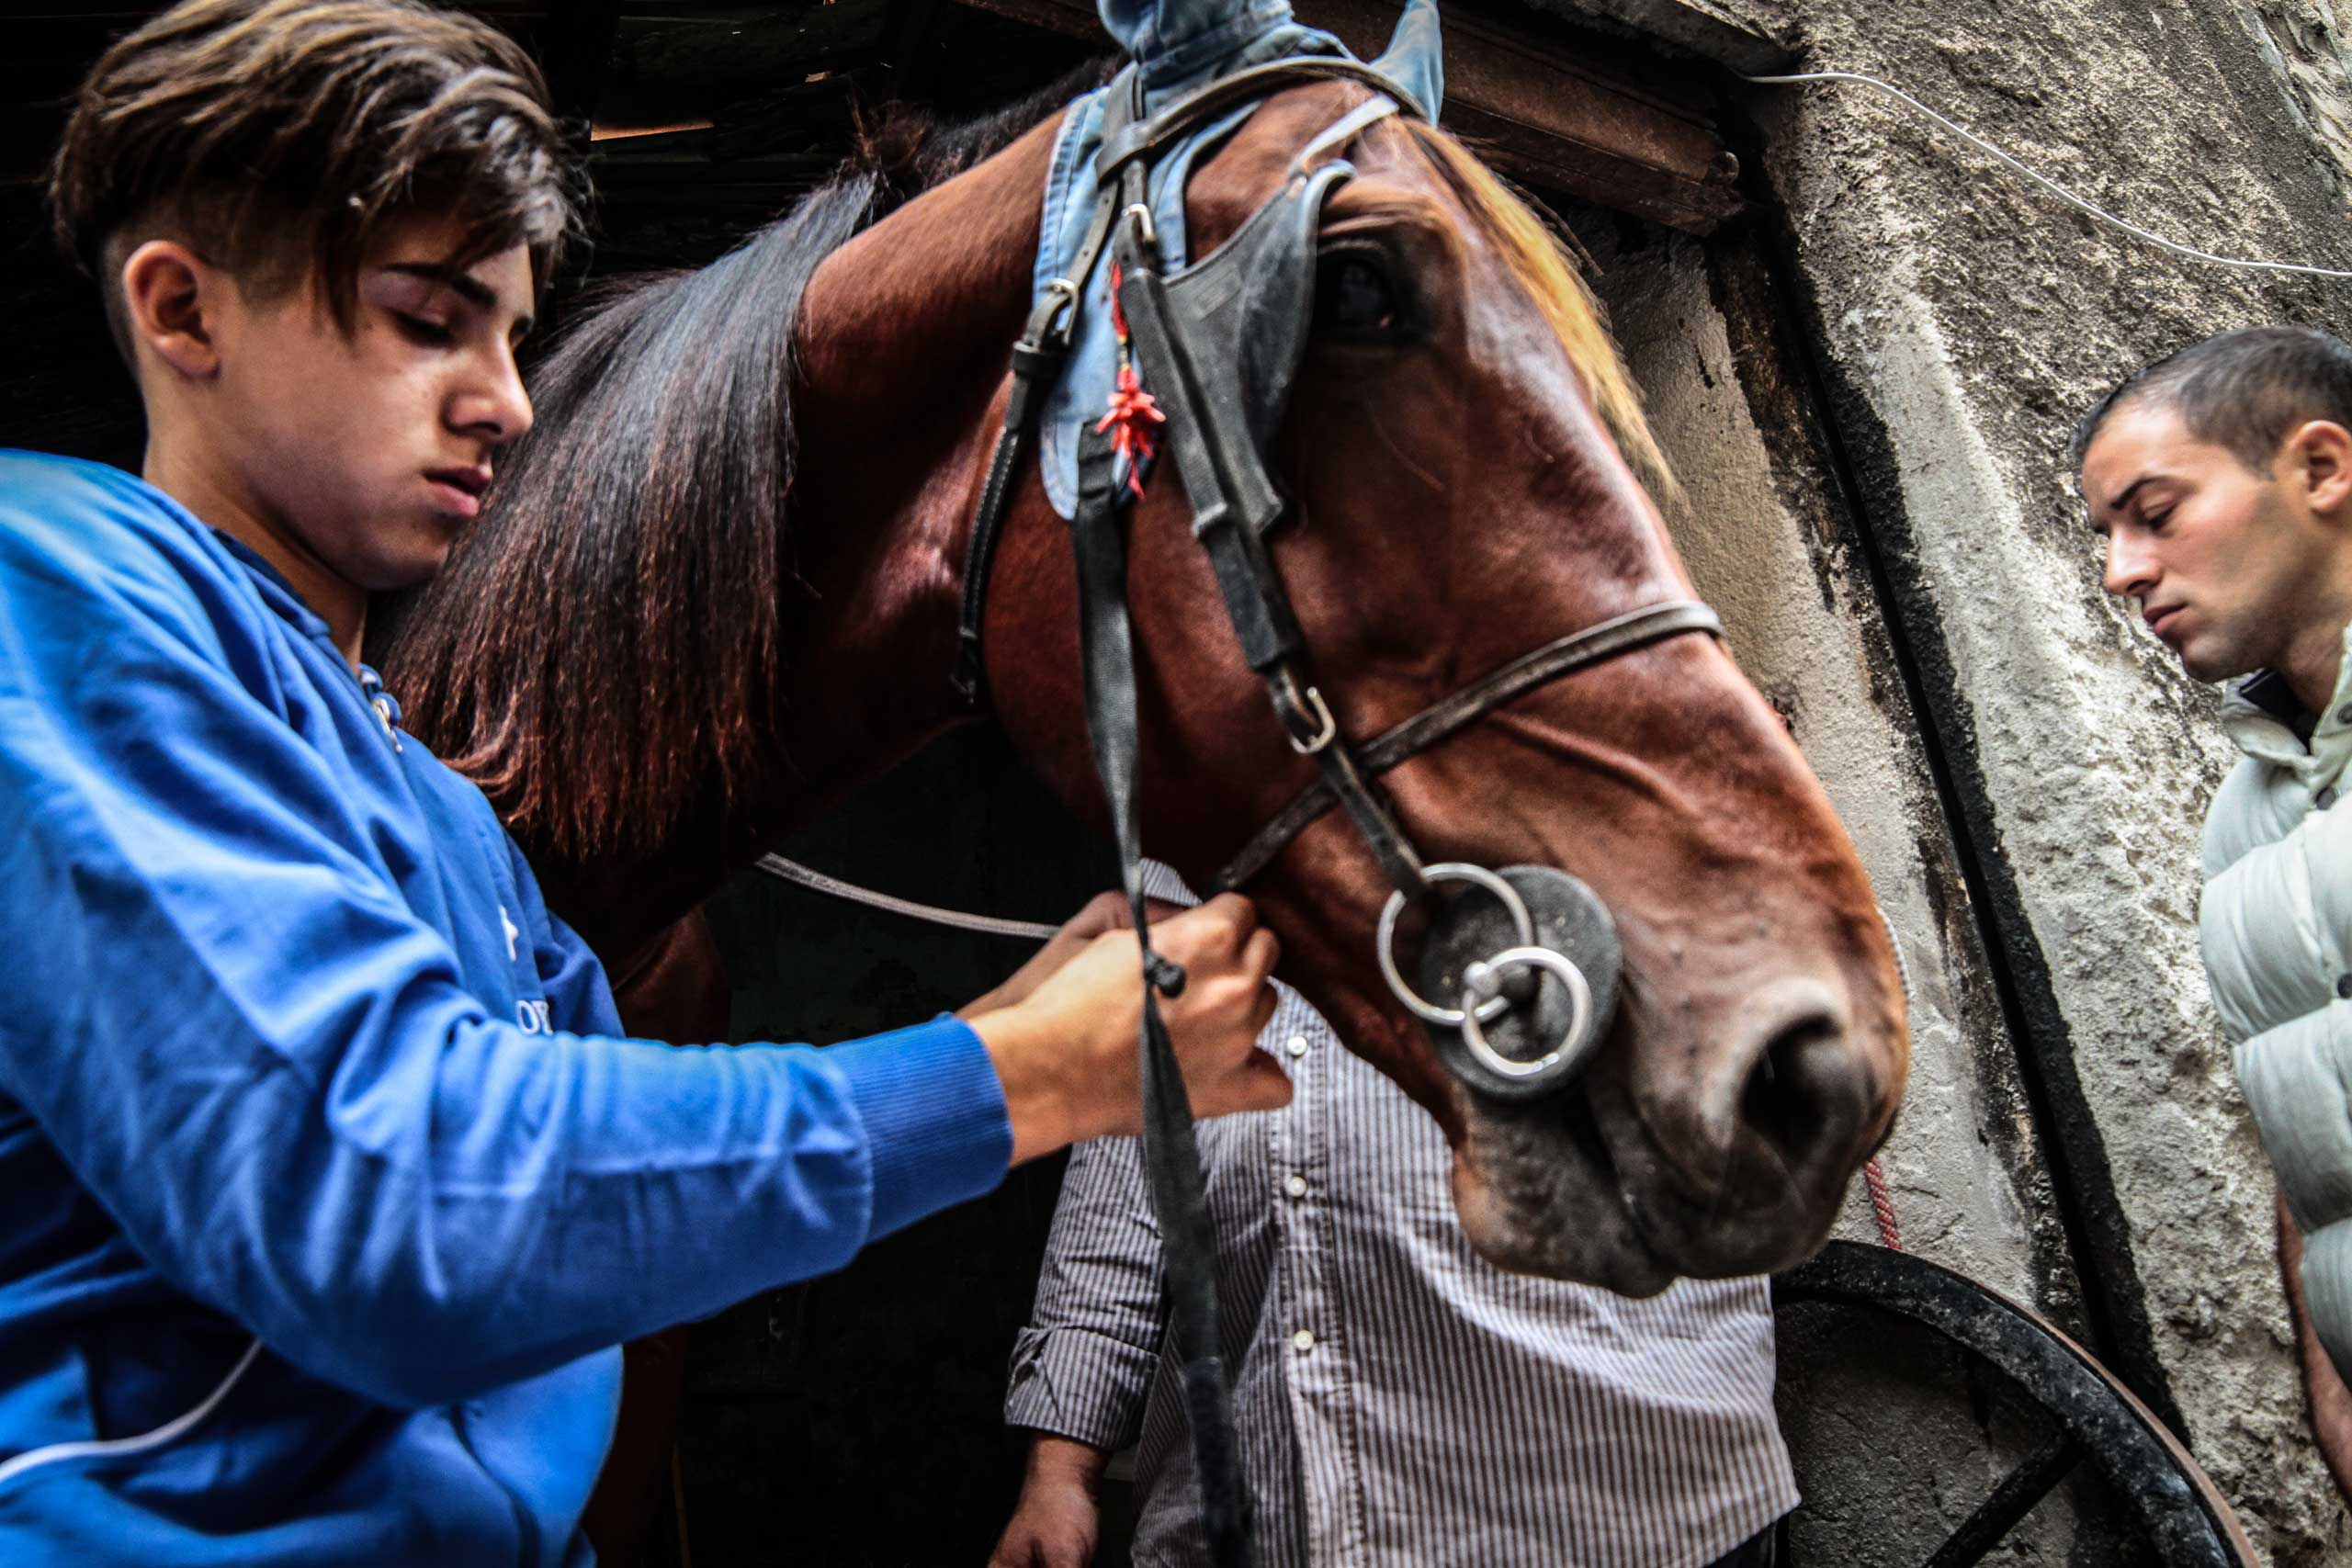 Young men take out a horse that is used in illegal horse racing for training in Ballarò, Palermo, Italy, in  June 2015.